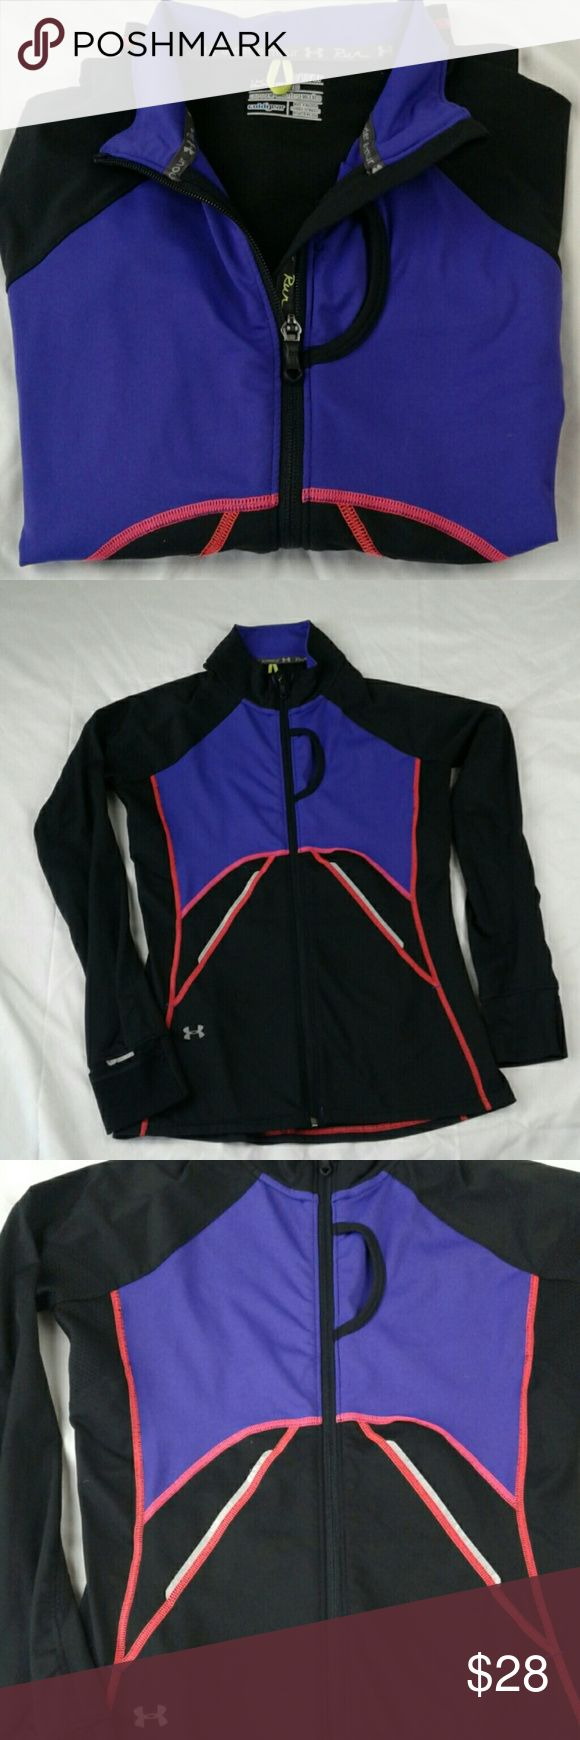 Gently Used  women UNDER ARMOU jacket Gently Used. Semi fitted running women  jacket. Size Xsmall. With full front zipper. Very light and stretchy with cute back pocket with zipper. Under Armour Jackets & Coats